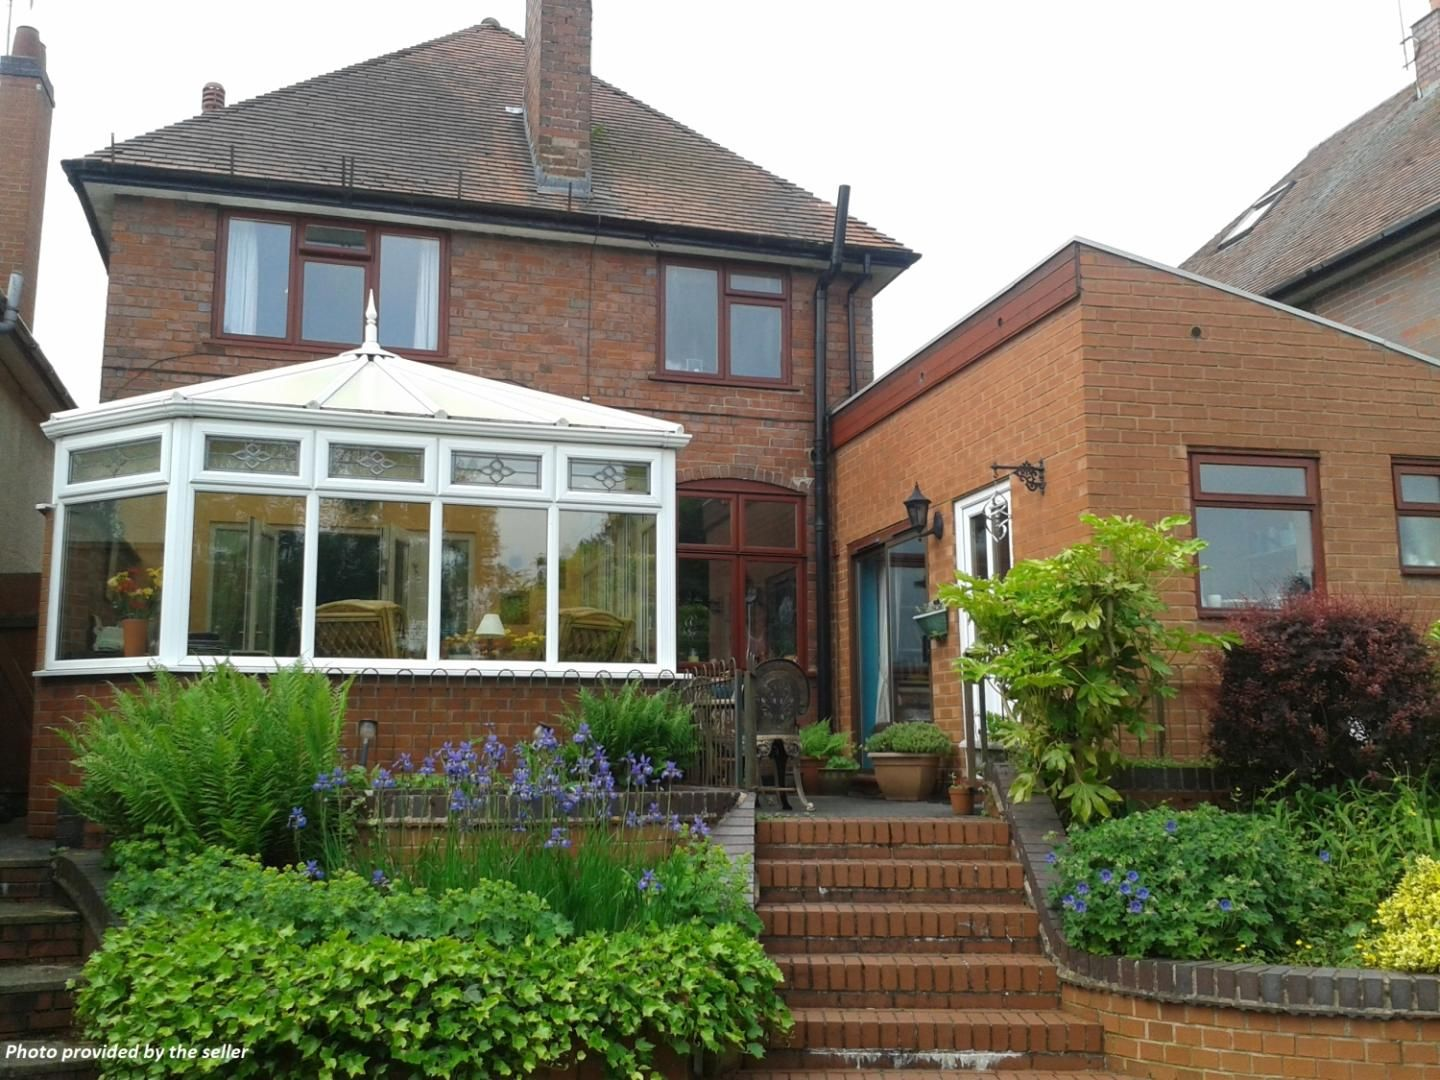 3 bed detached for sale in Stourbridge Road, Fairfield, Bromsgrove, B61 19